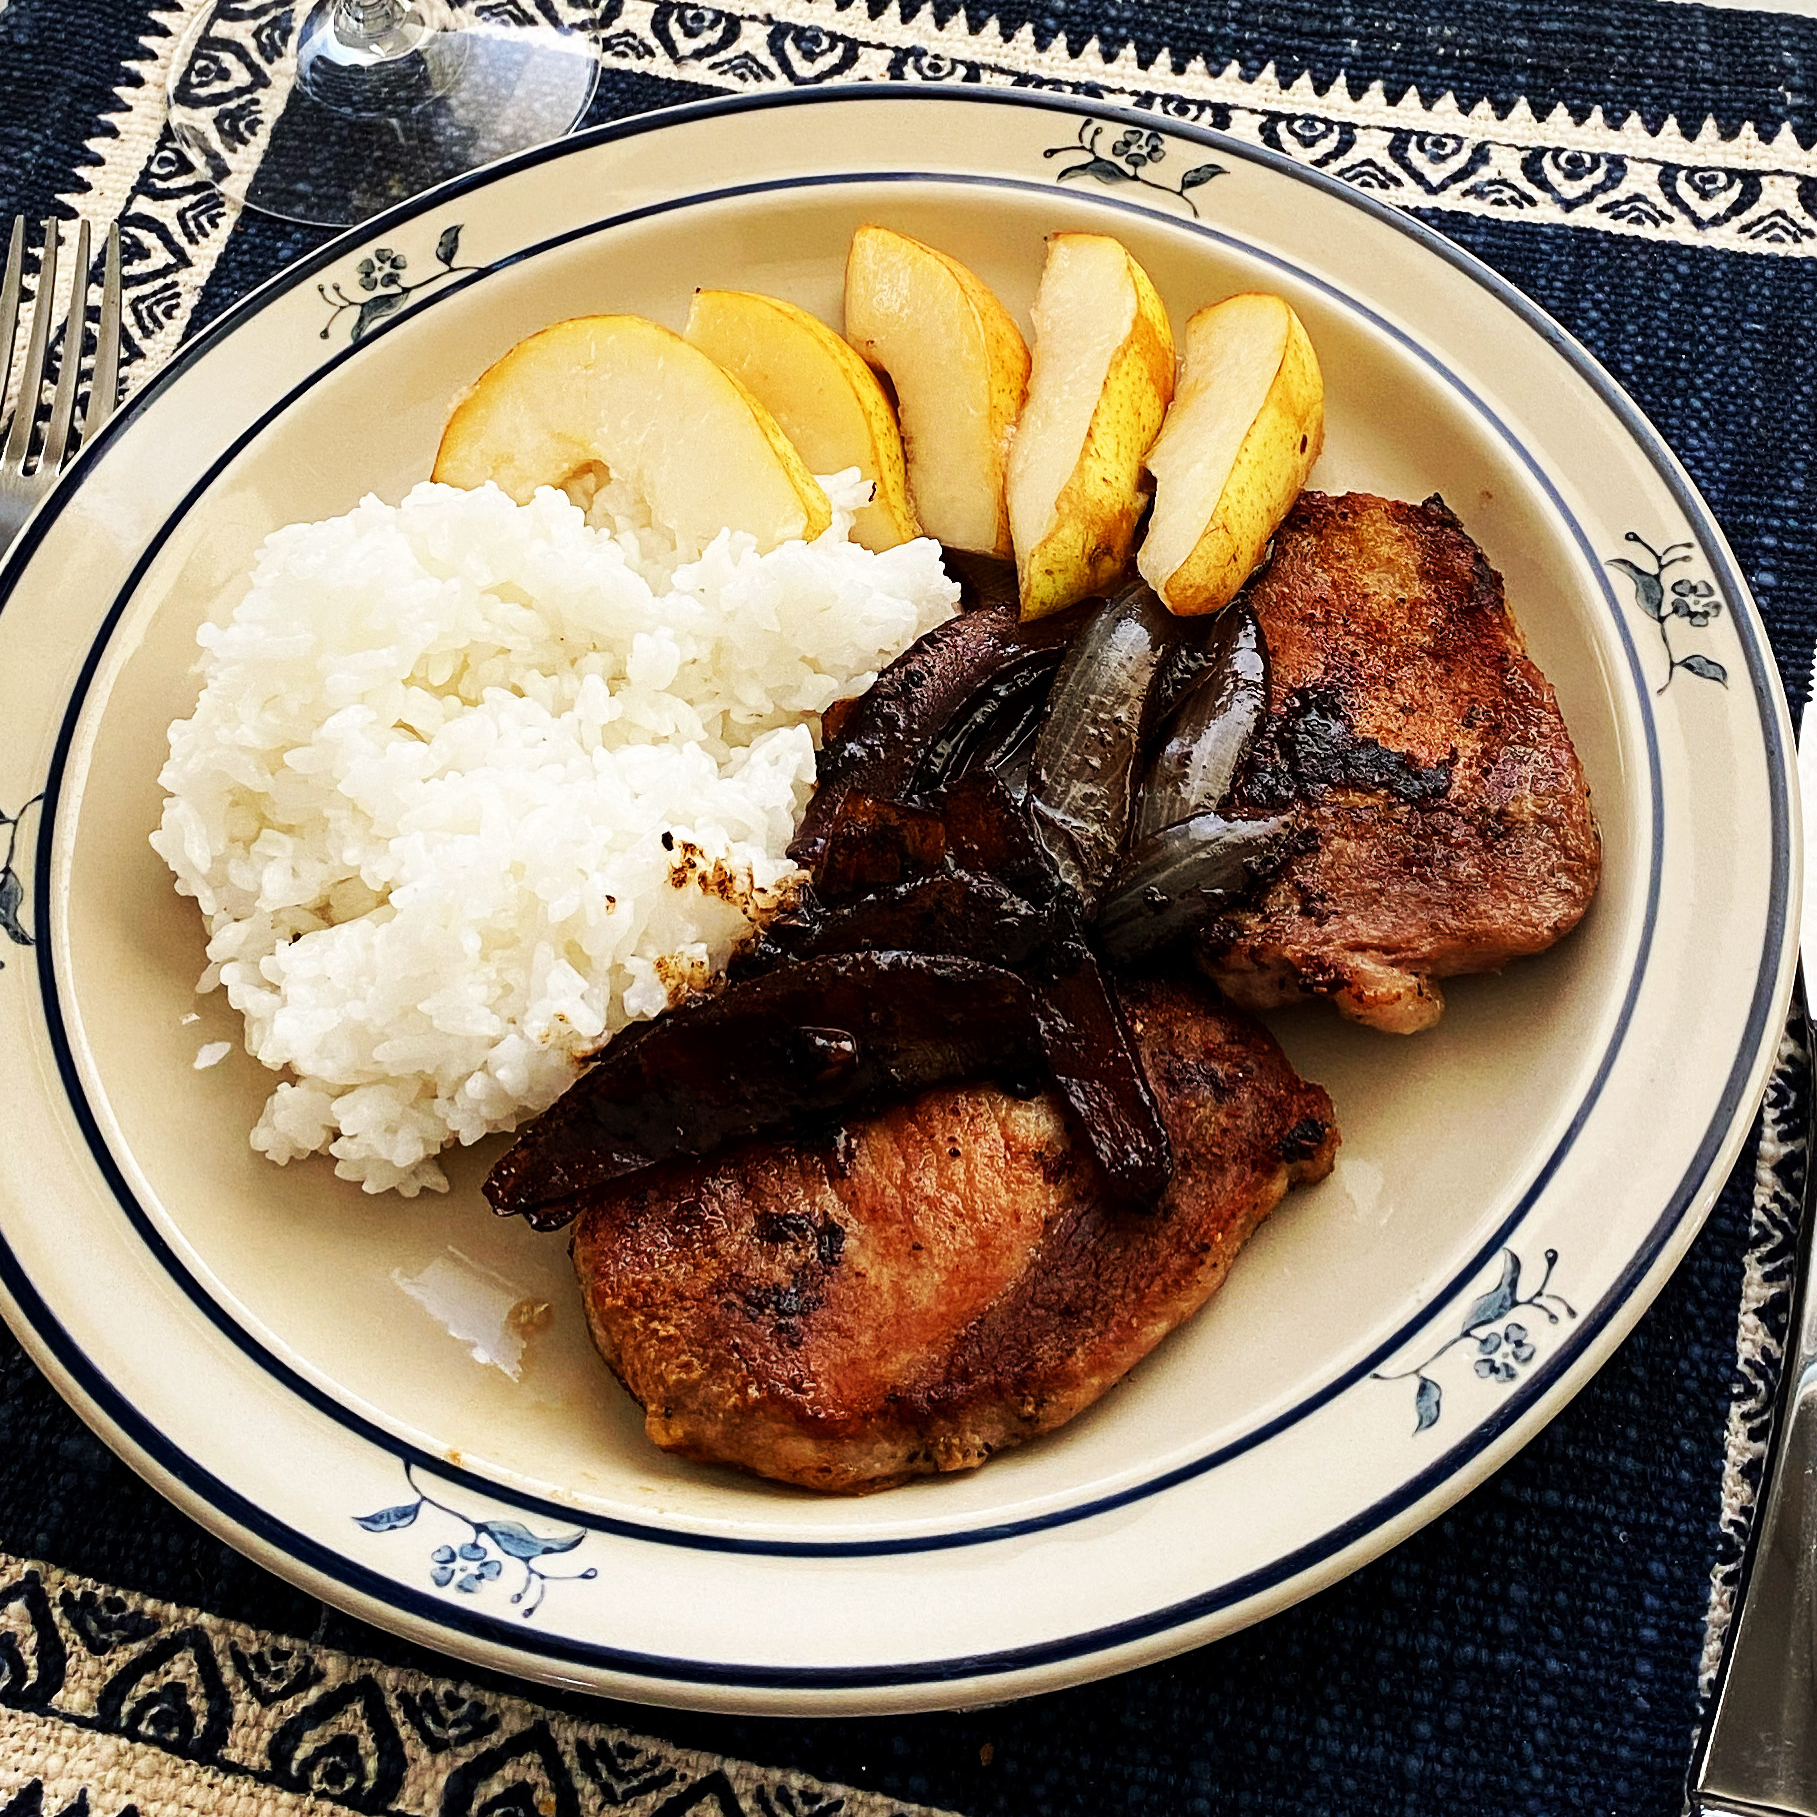 Grilled Pork Chops with Balsamic Caramelized Pears Laura Landeros Cook